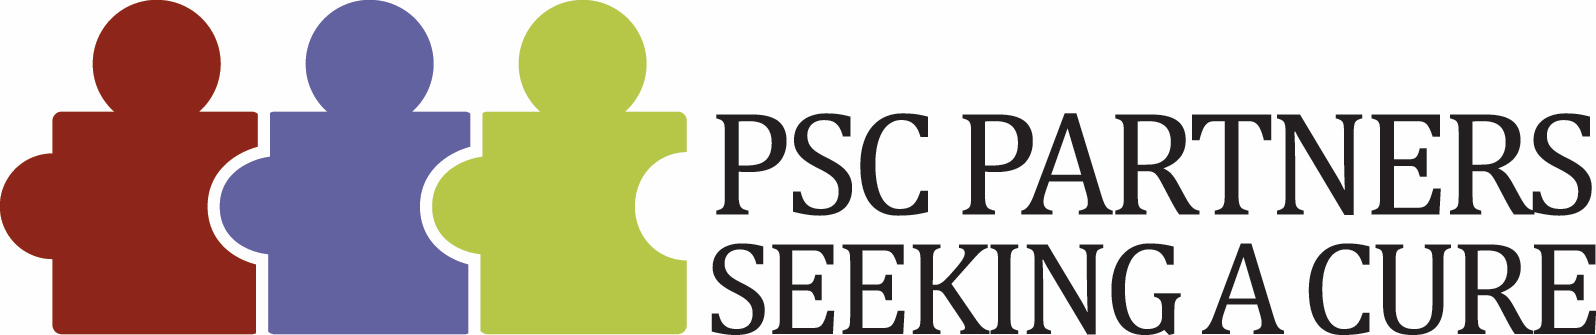 PSC Partners Seeking a Cure